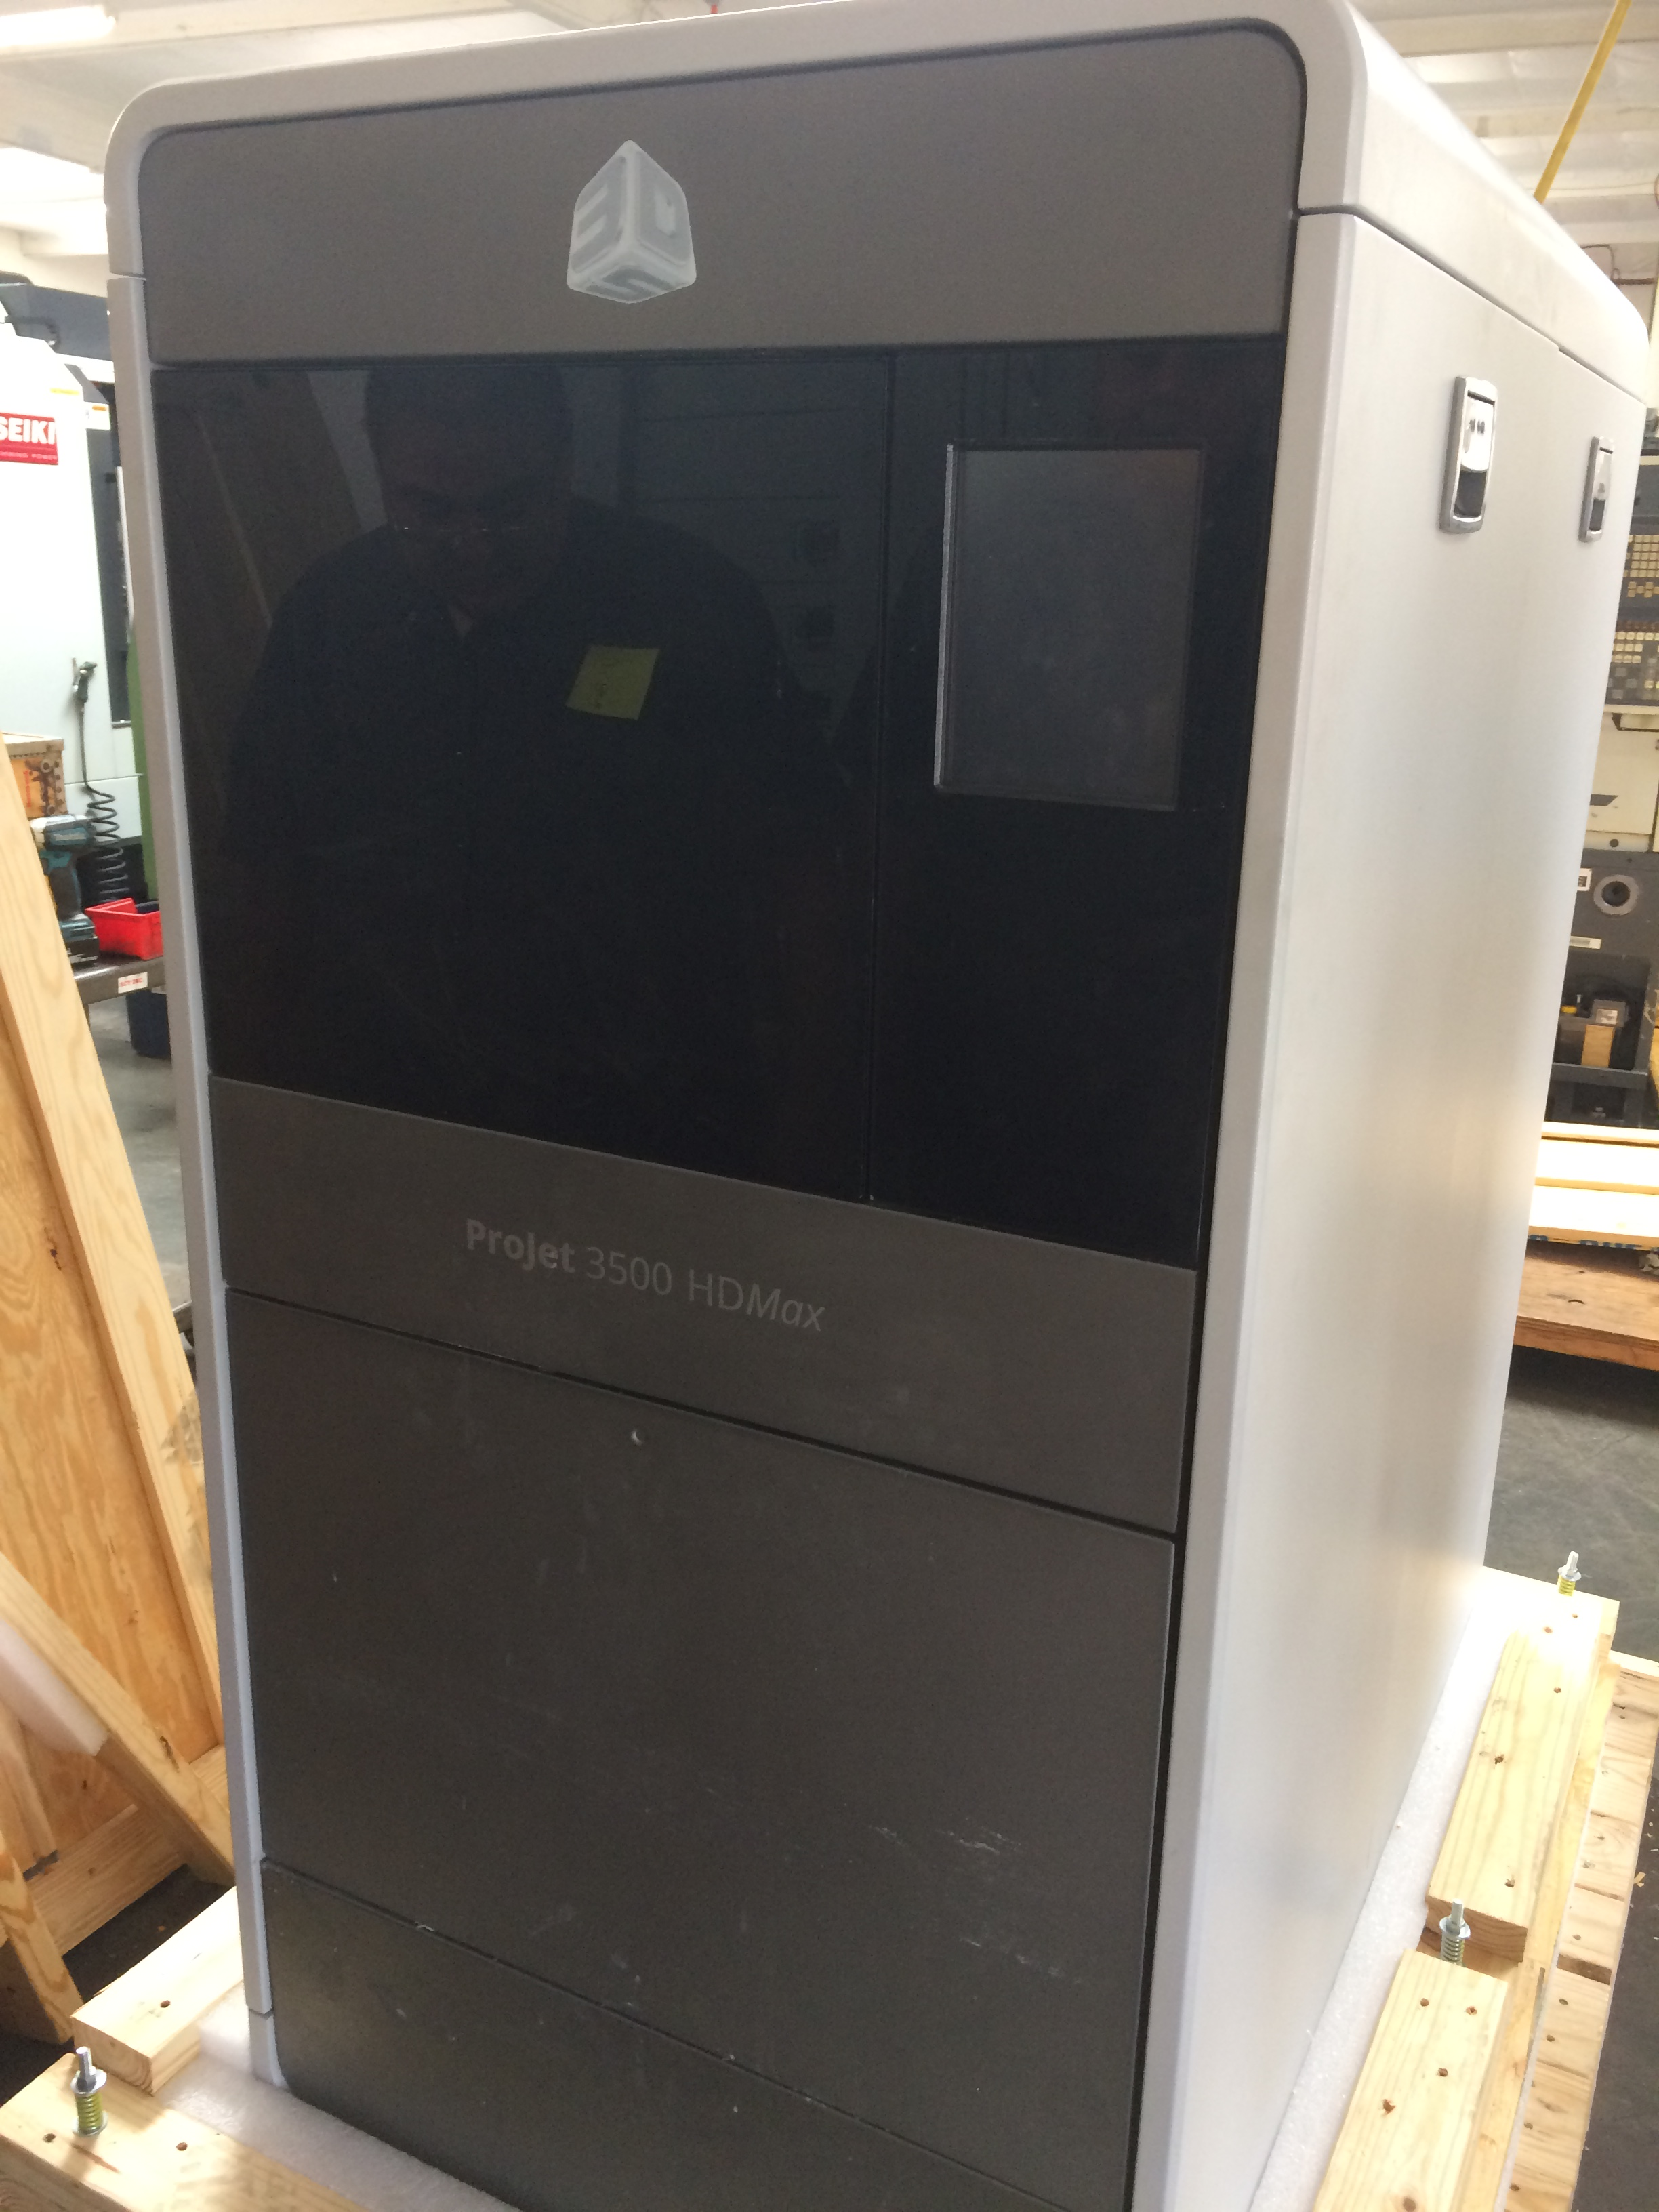 Projet 3500 HDMAX 3D Printer with Projet 3500 Finisher 2015